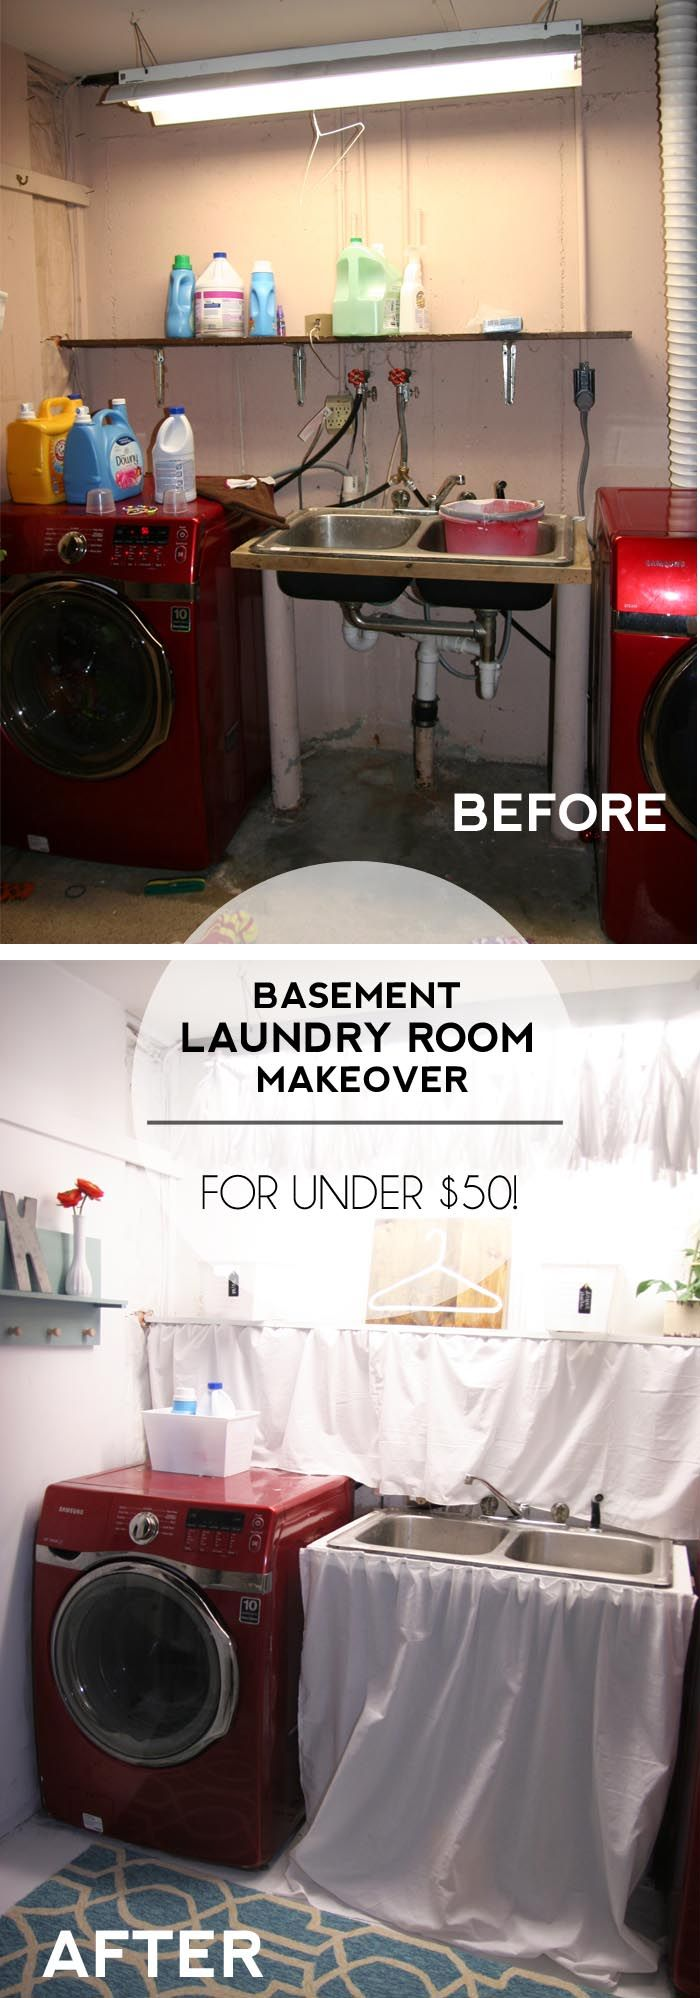 Basement Laundry Room Makeover! Transform your unfinished basement laundry room with a tiny budget using these laundry room ideas and DIY's!